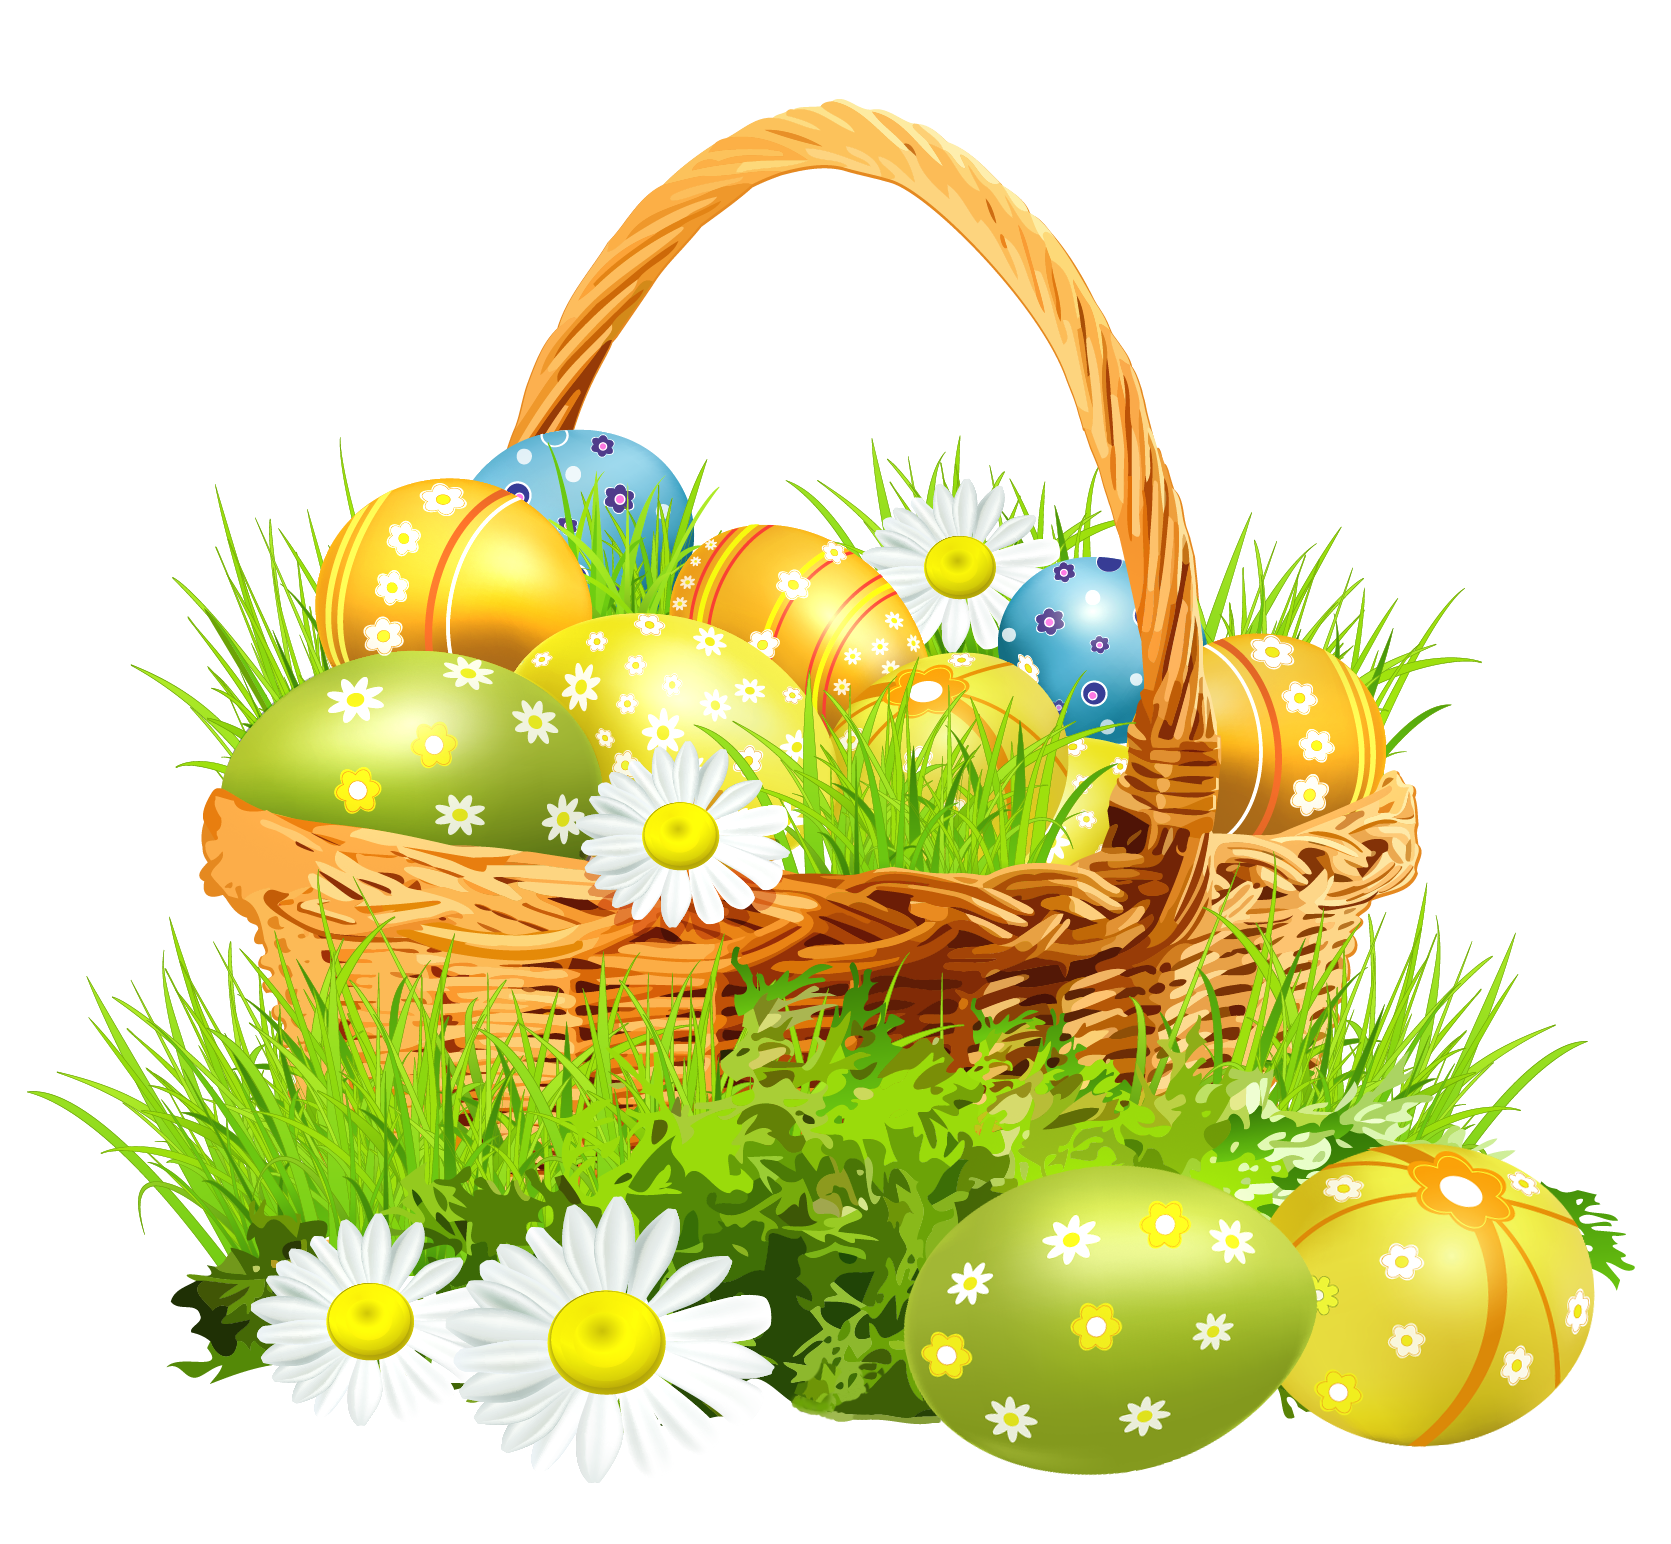 Easter png images. Basket with eggsand daisies